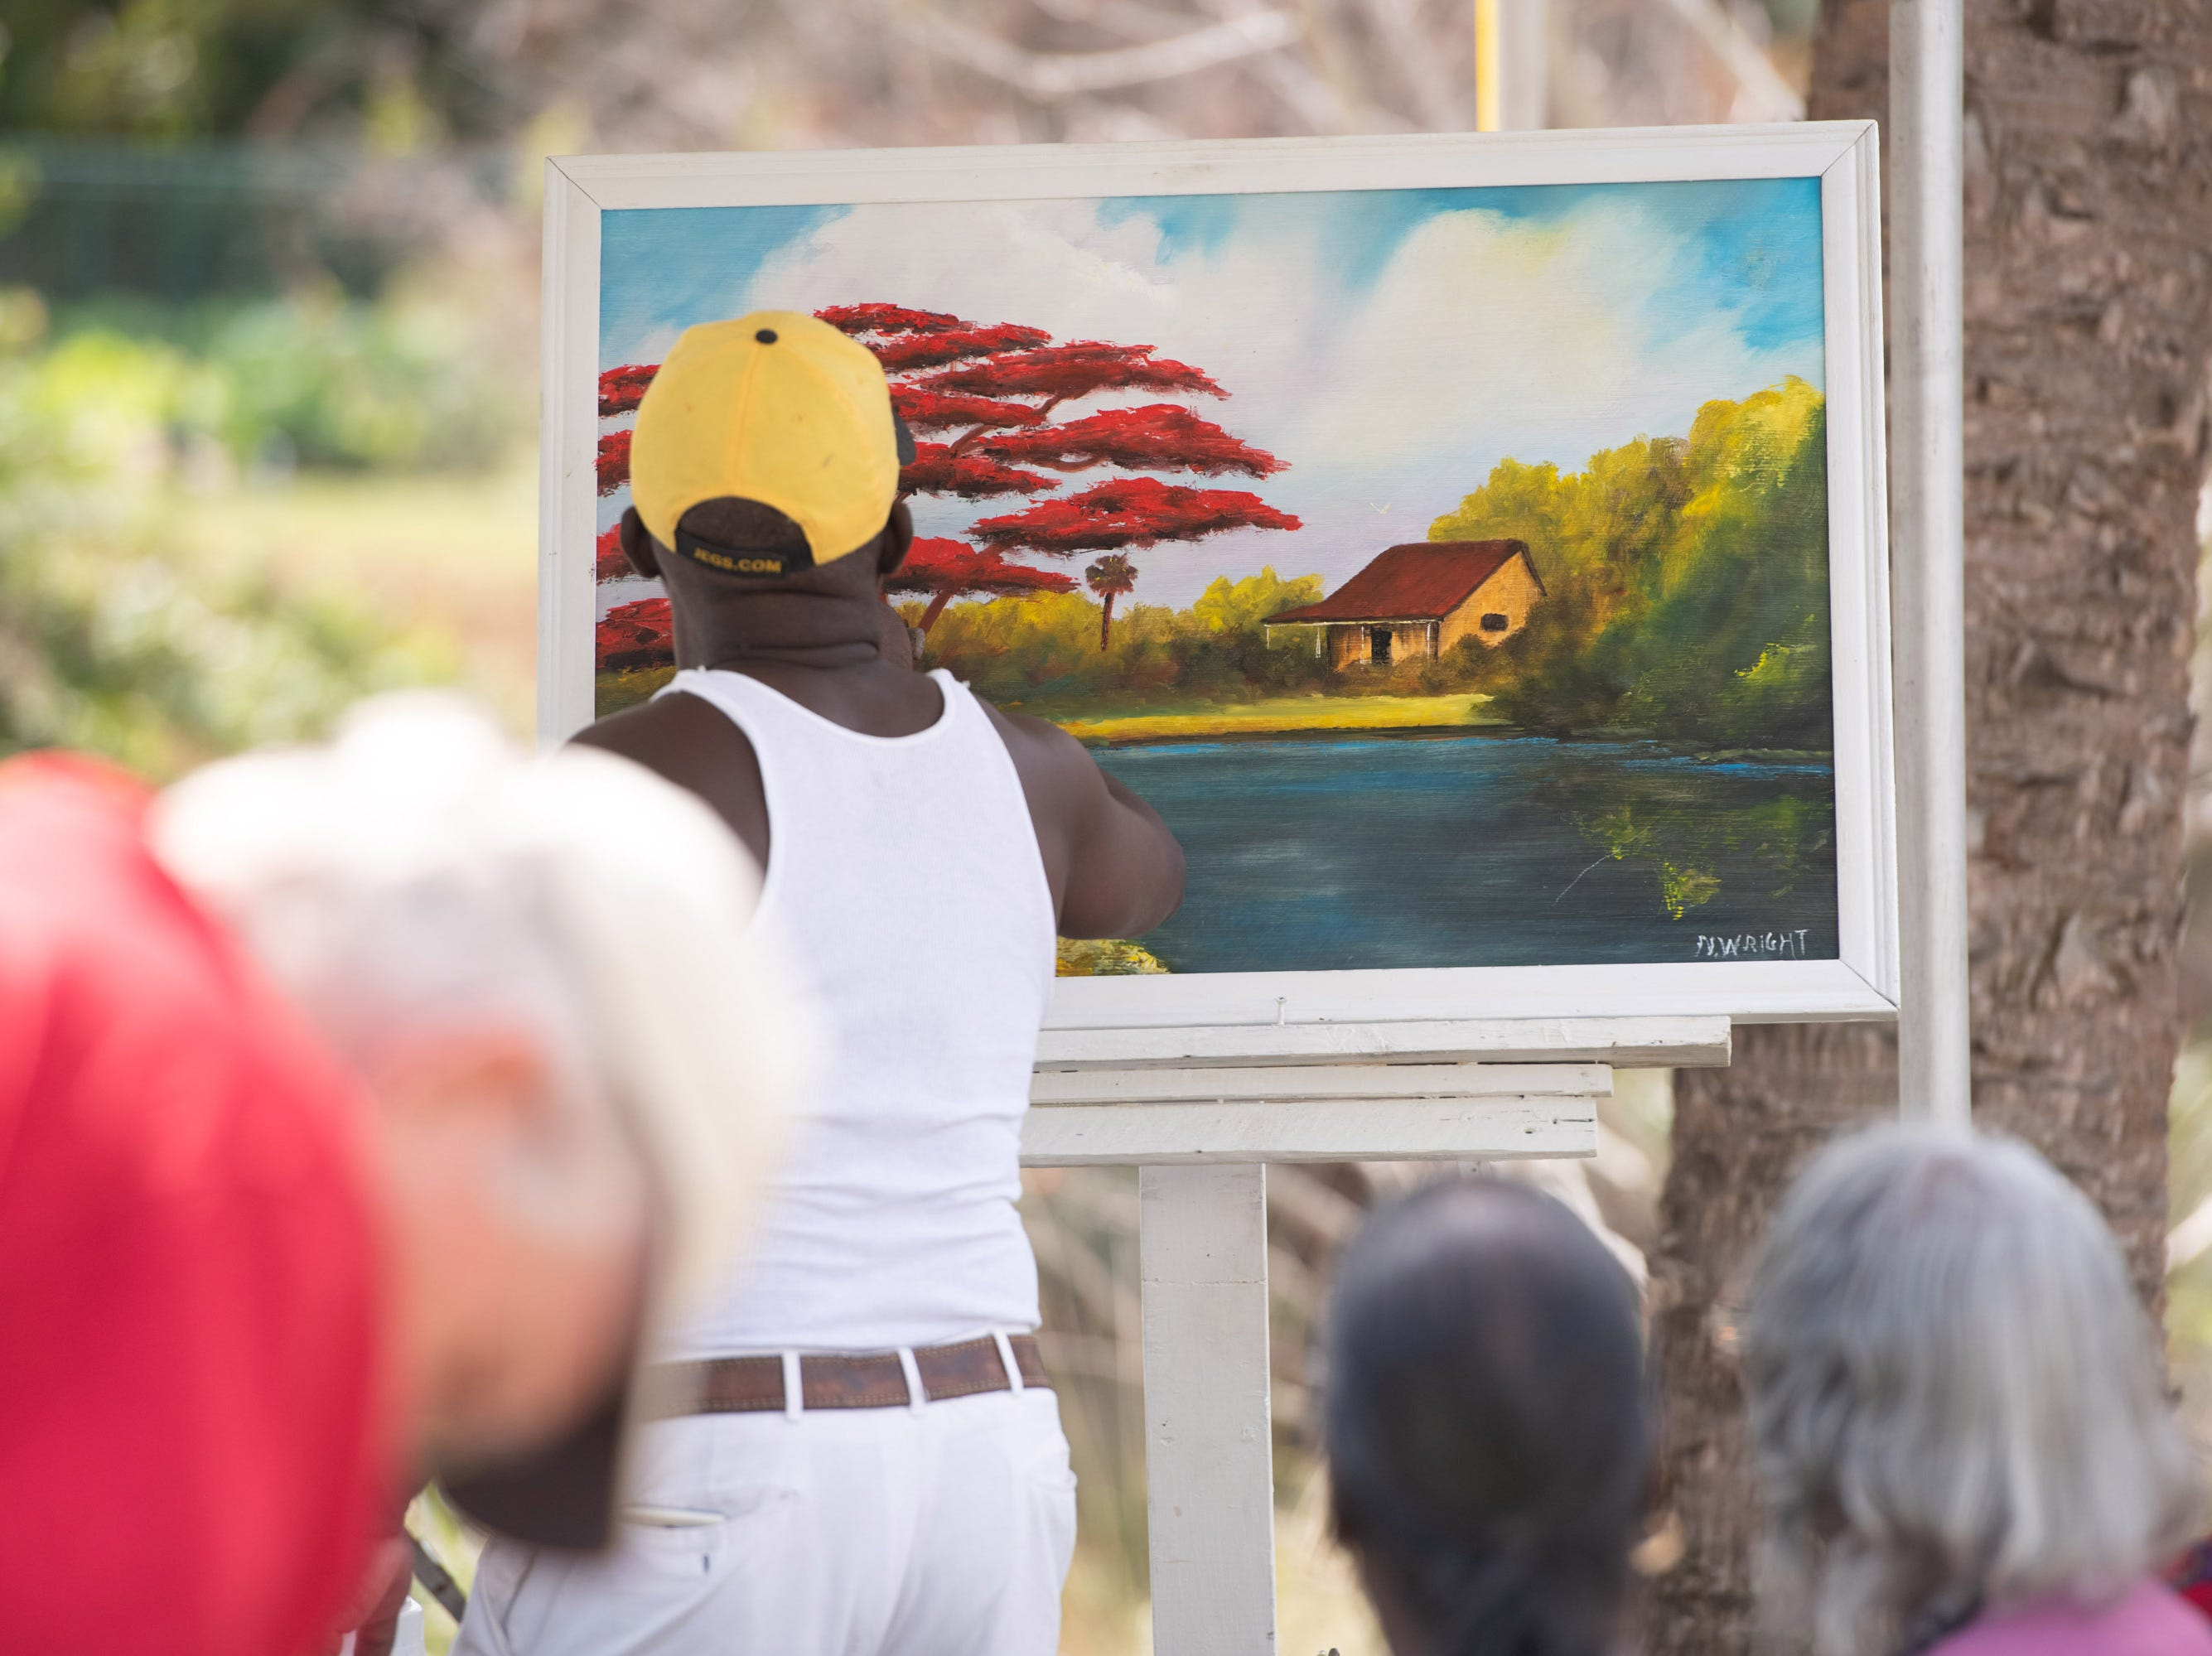 The 4th Annual Highwaymen Heritage Trail Art Show and Festival takes place at Moore's Creek Linear Park on Saturday, Feb. 16, 2019, in Fort Pierce.